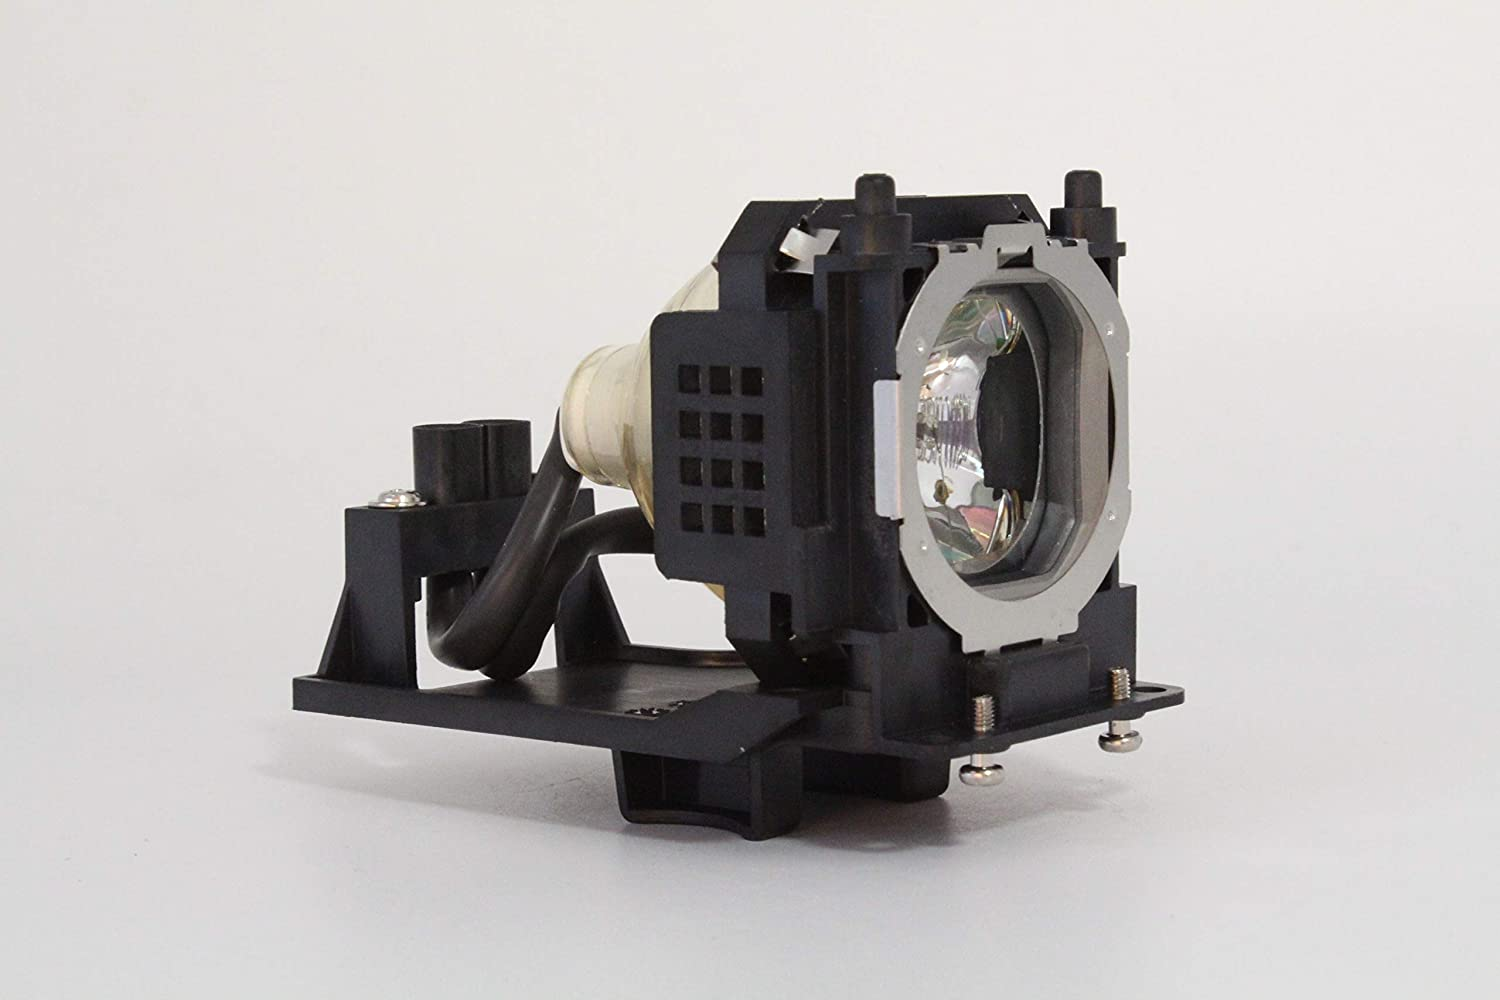 POA-LMP94 Premium Compatible Projector Replacement Lamp with Housing for SANYO PLV-Z5 / PLV-Z4 / PLV-Z60 / PLV-Z5BK by Watoman